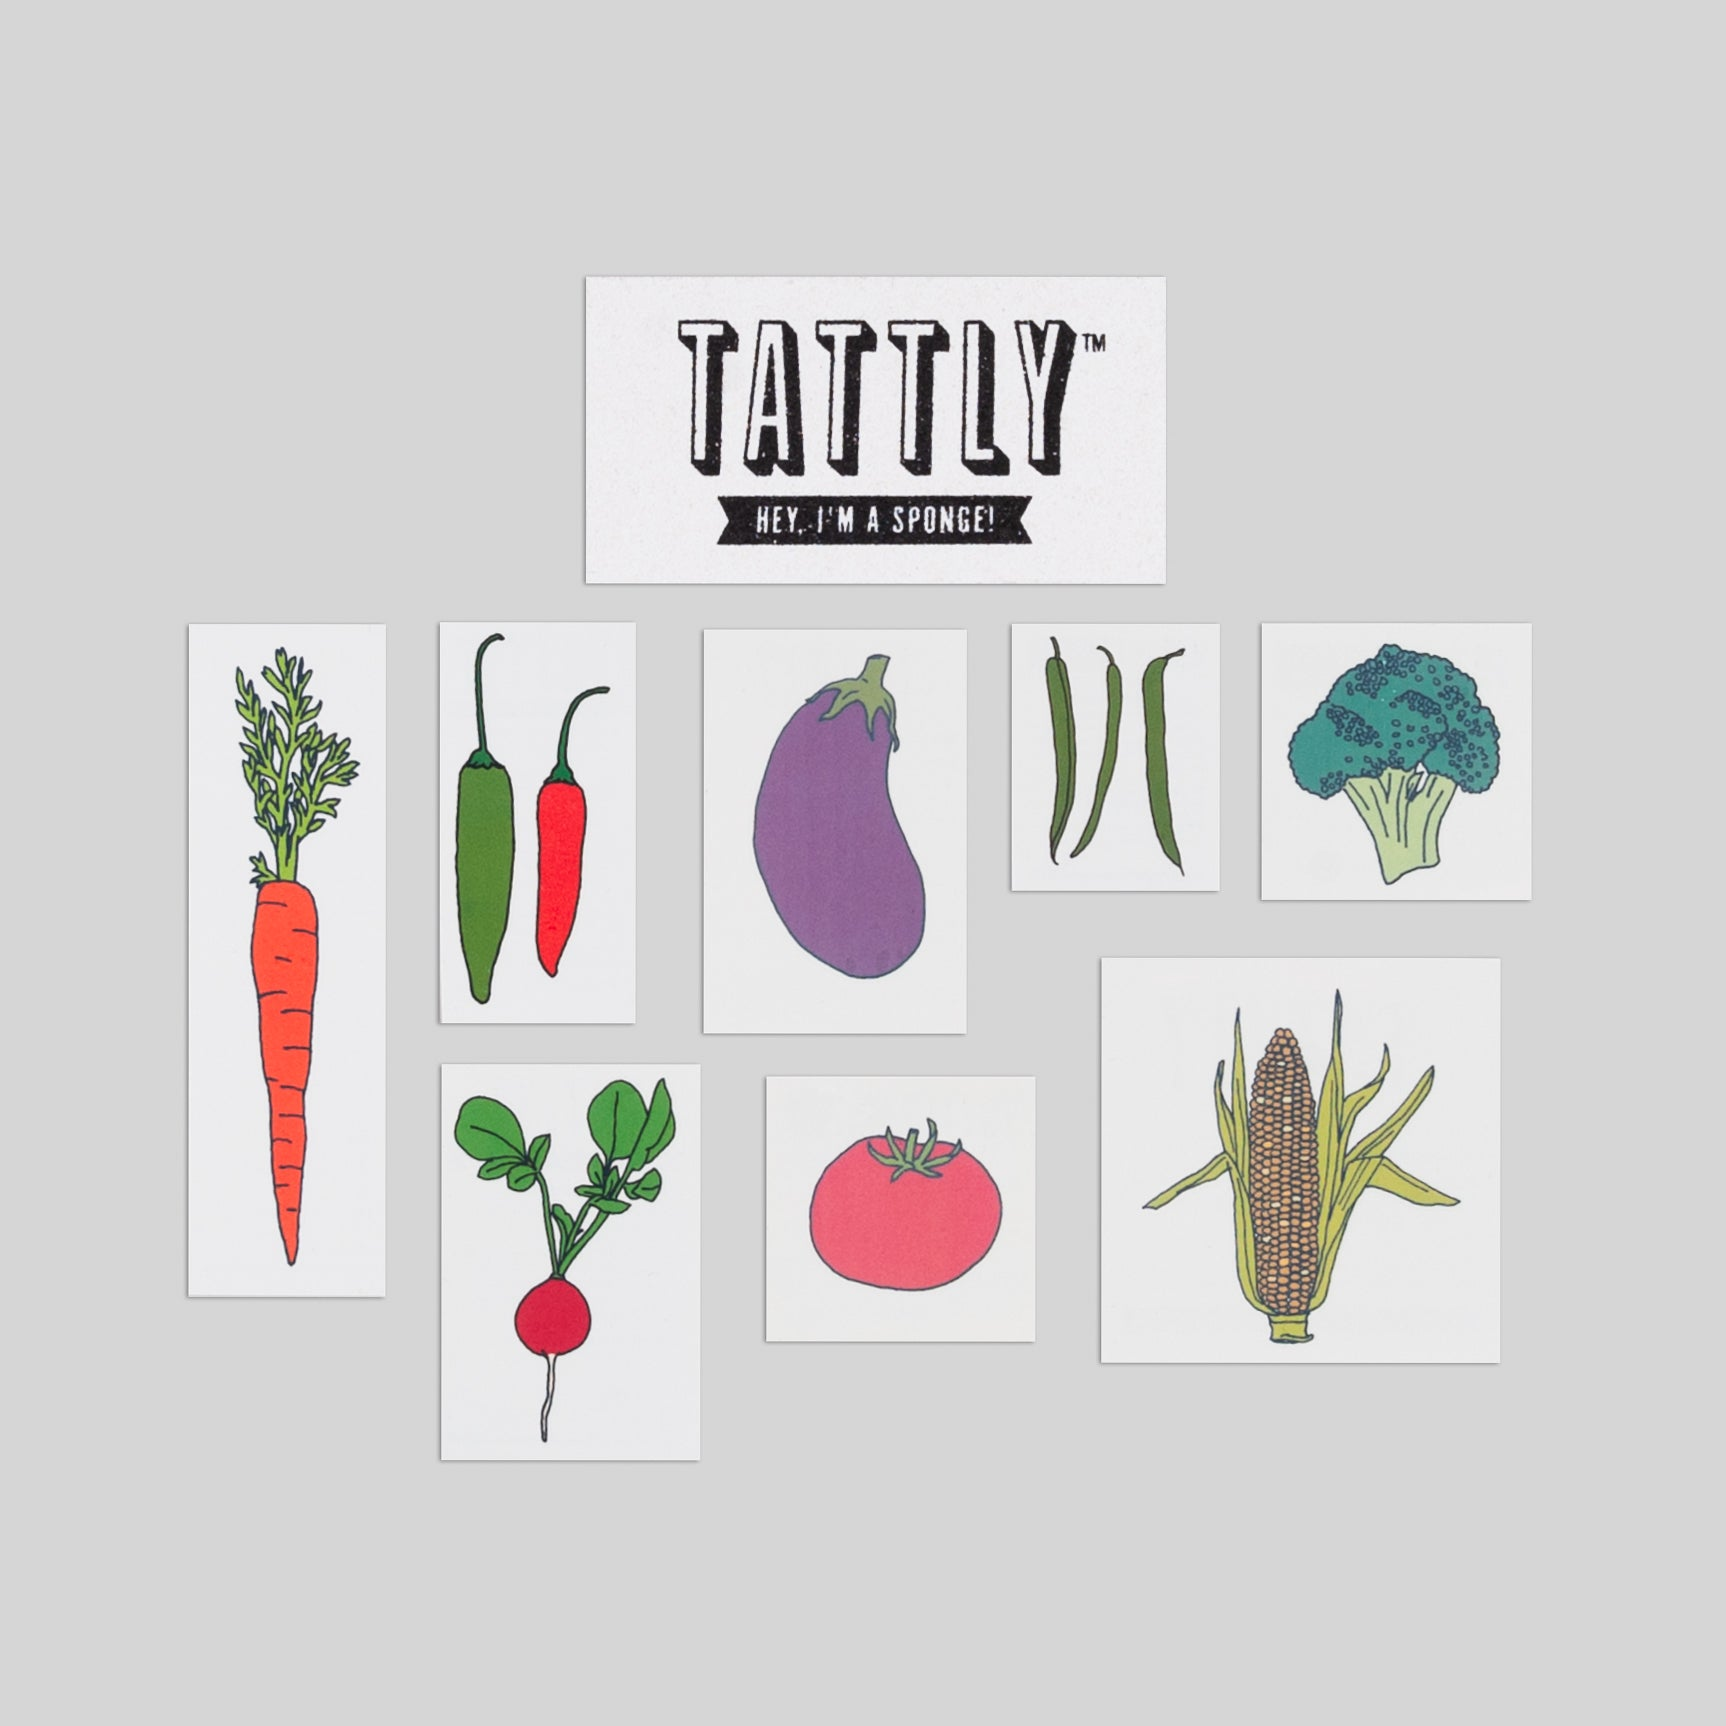 Ve able Set by Julia Rothman from Tattly Temporary Tattoos